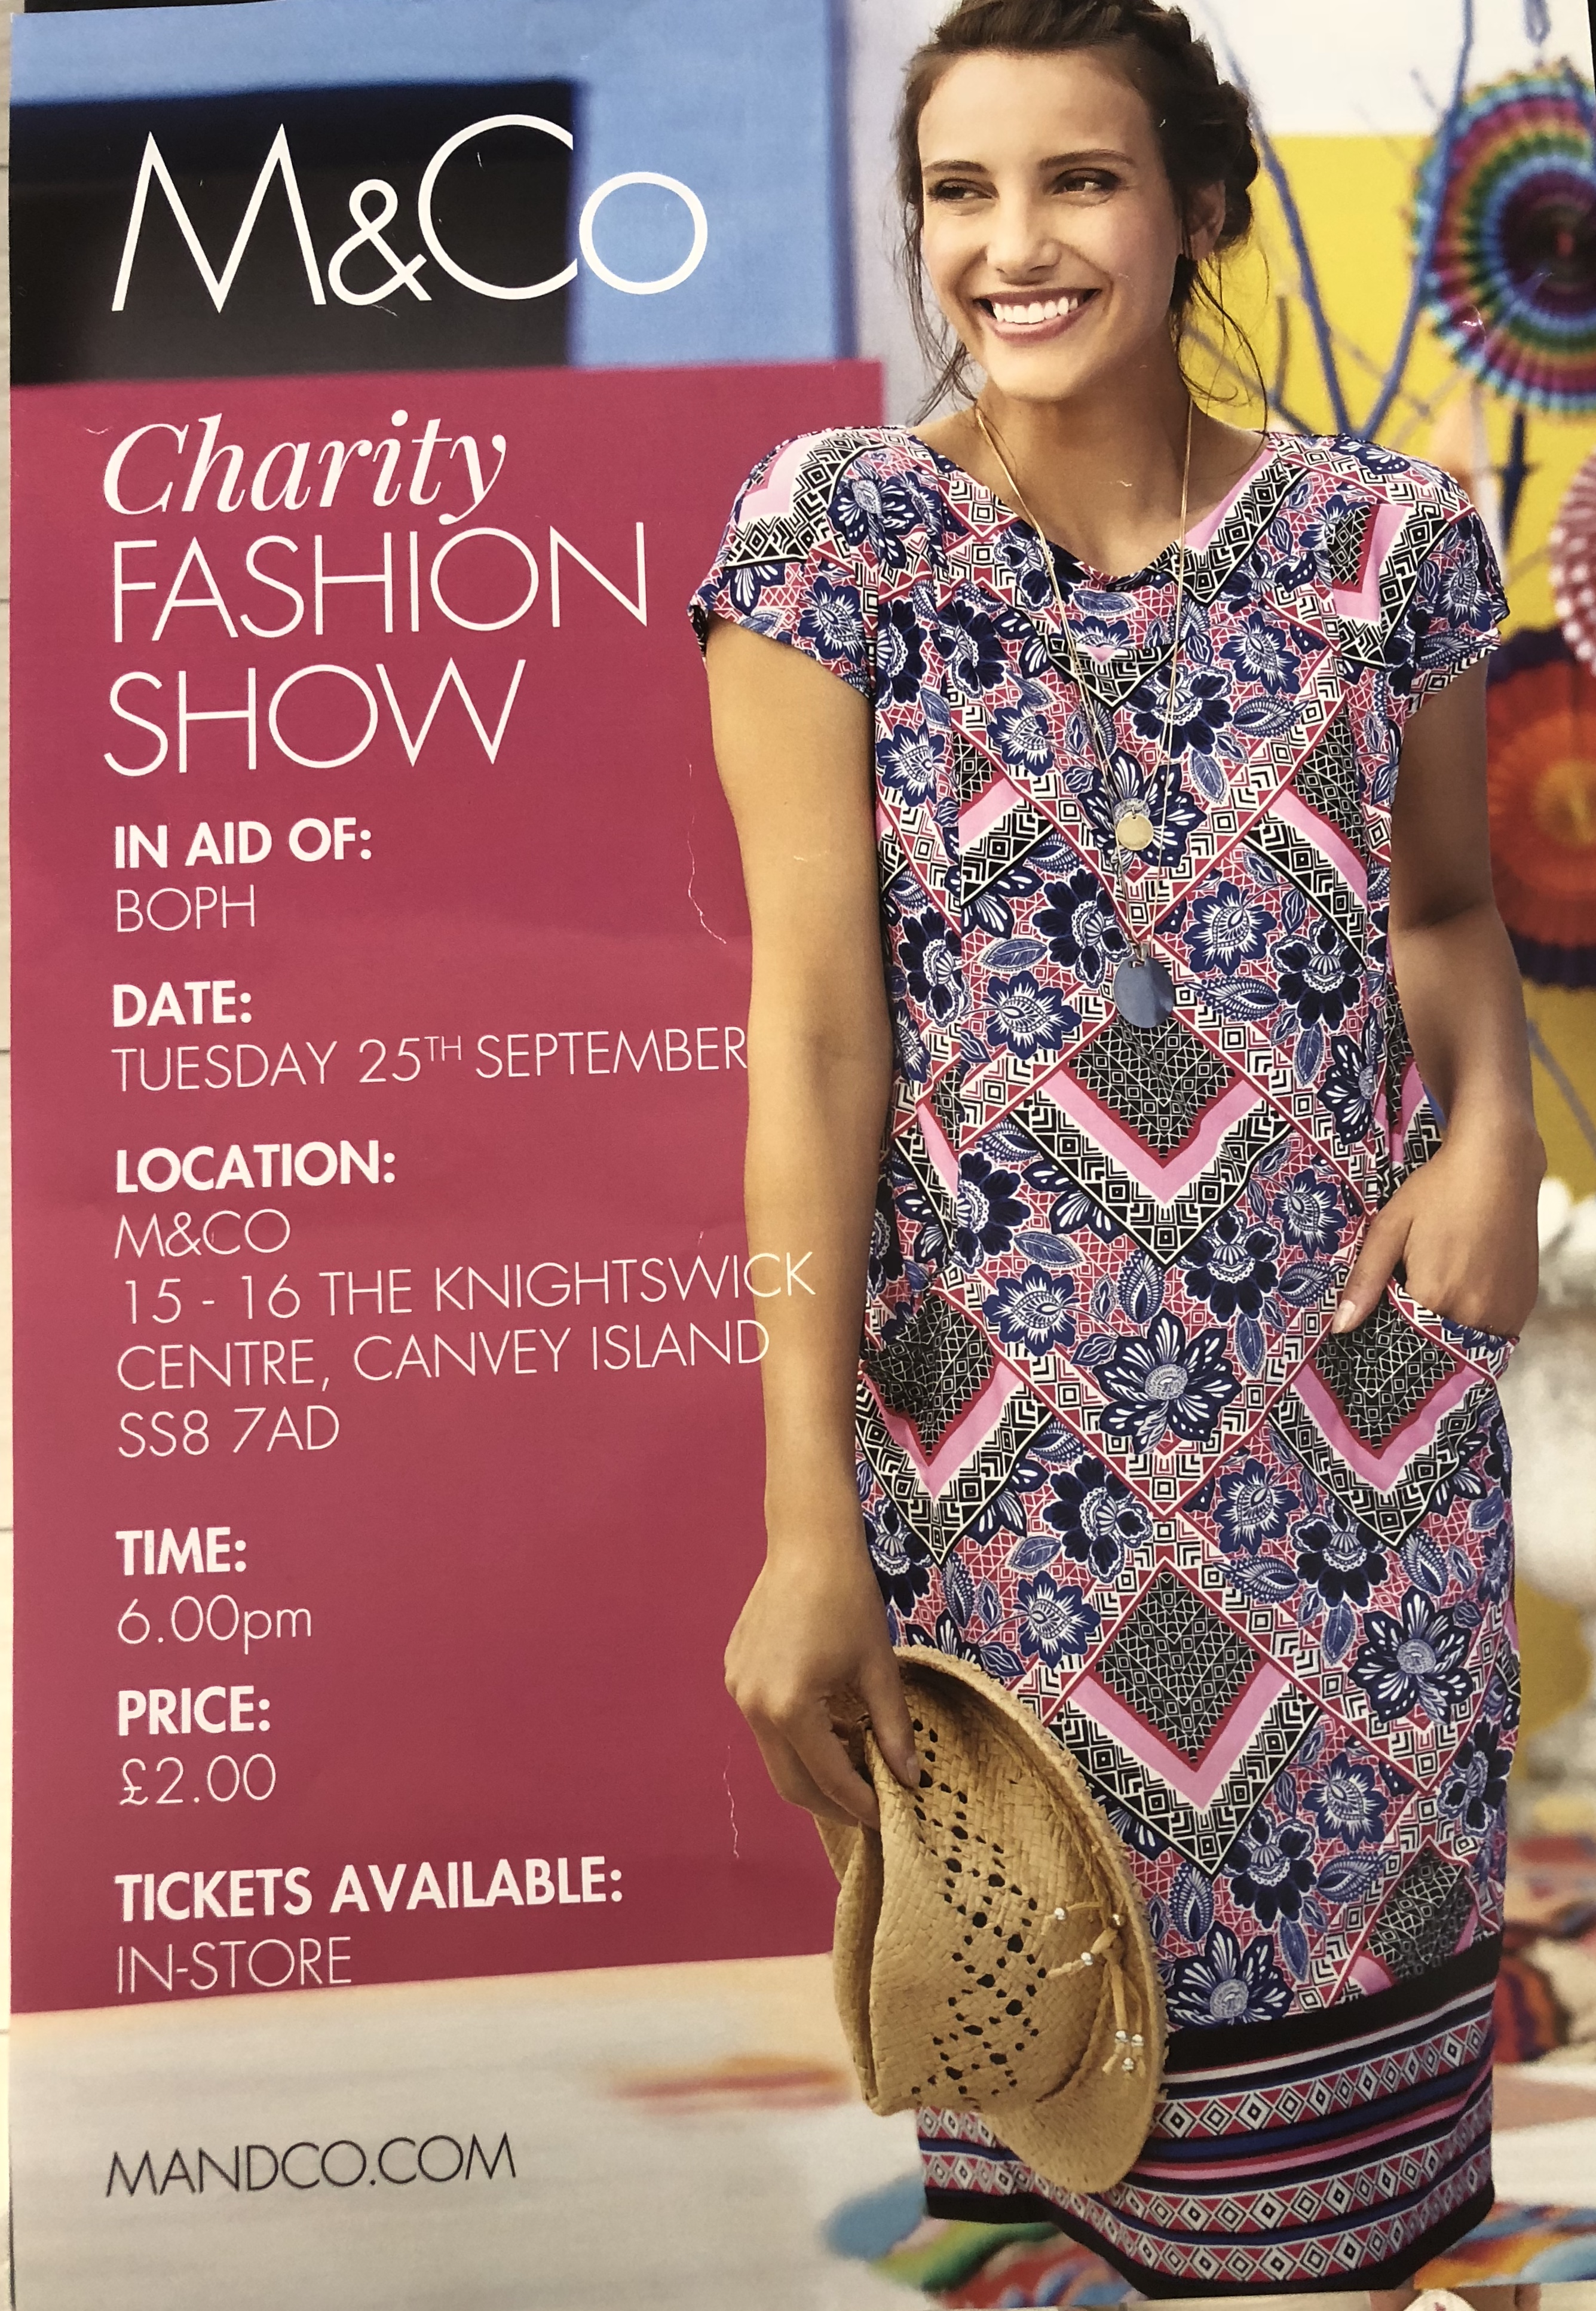 Come and Join us for our Fashion Show with M&Co